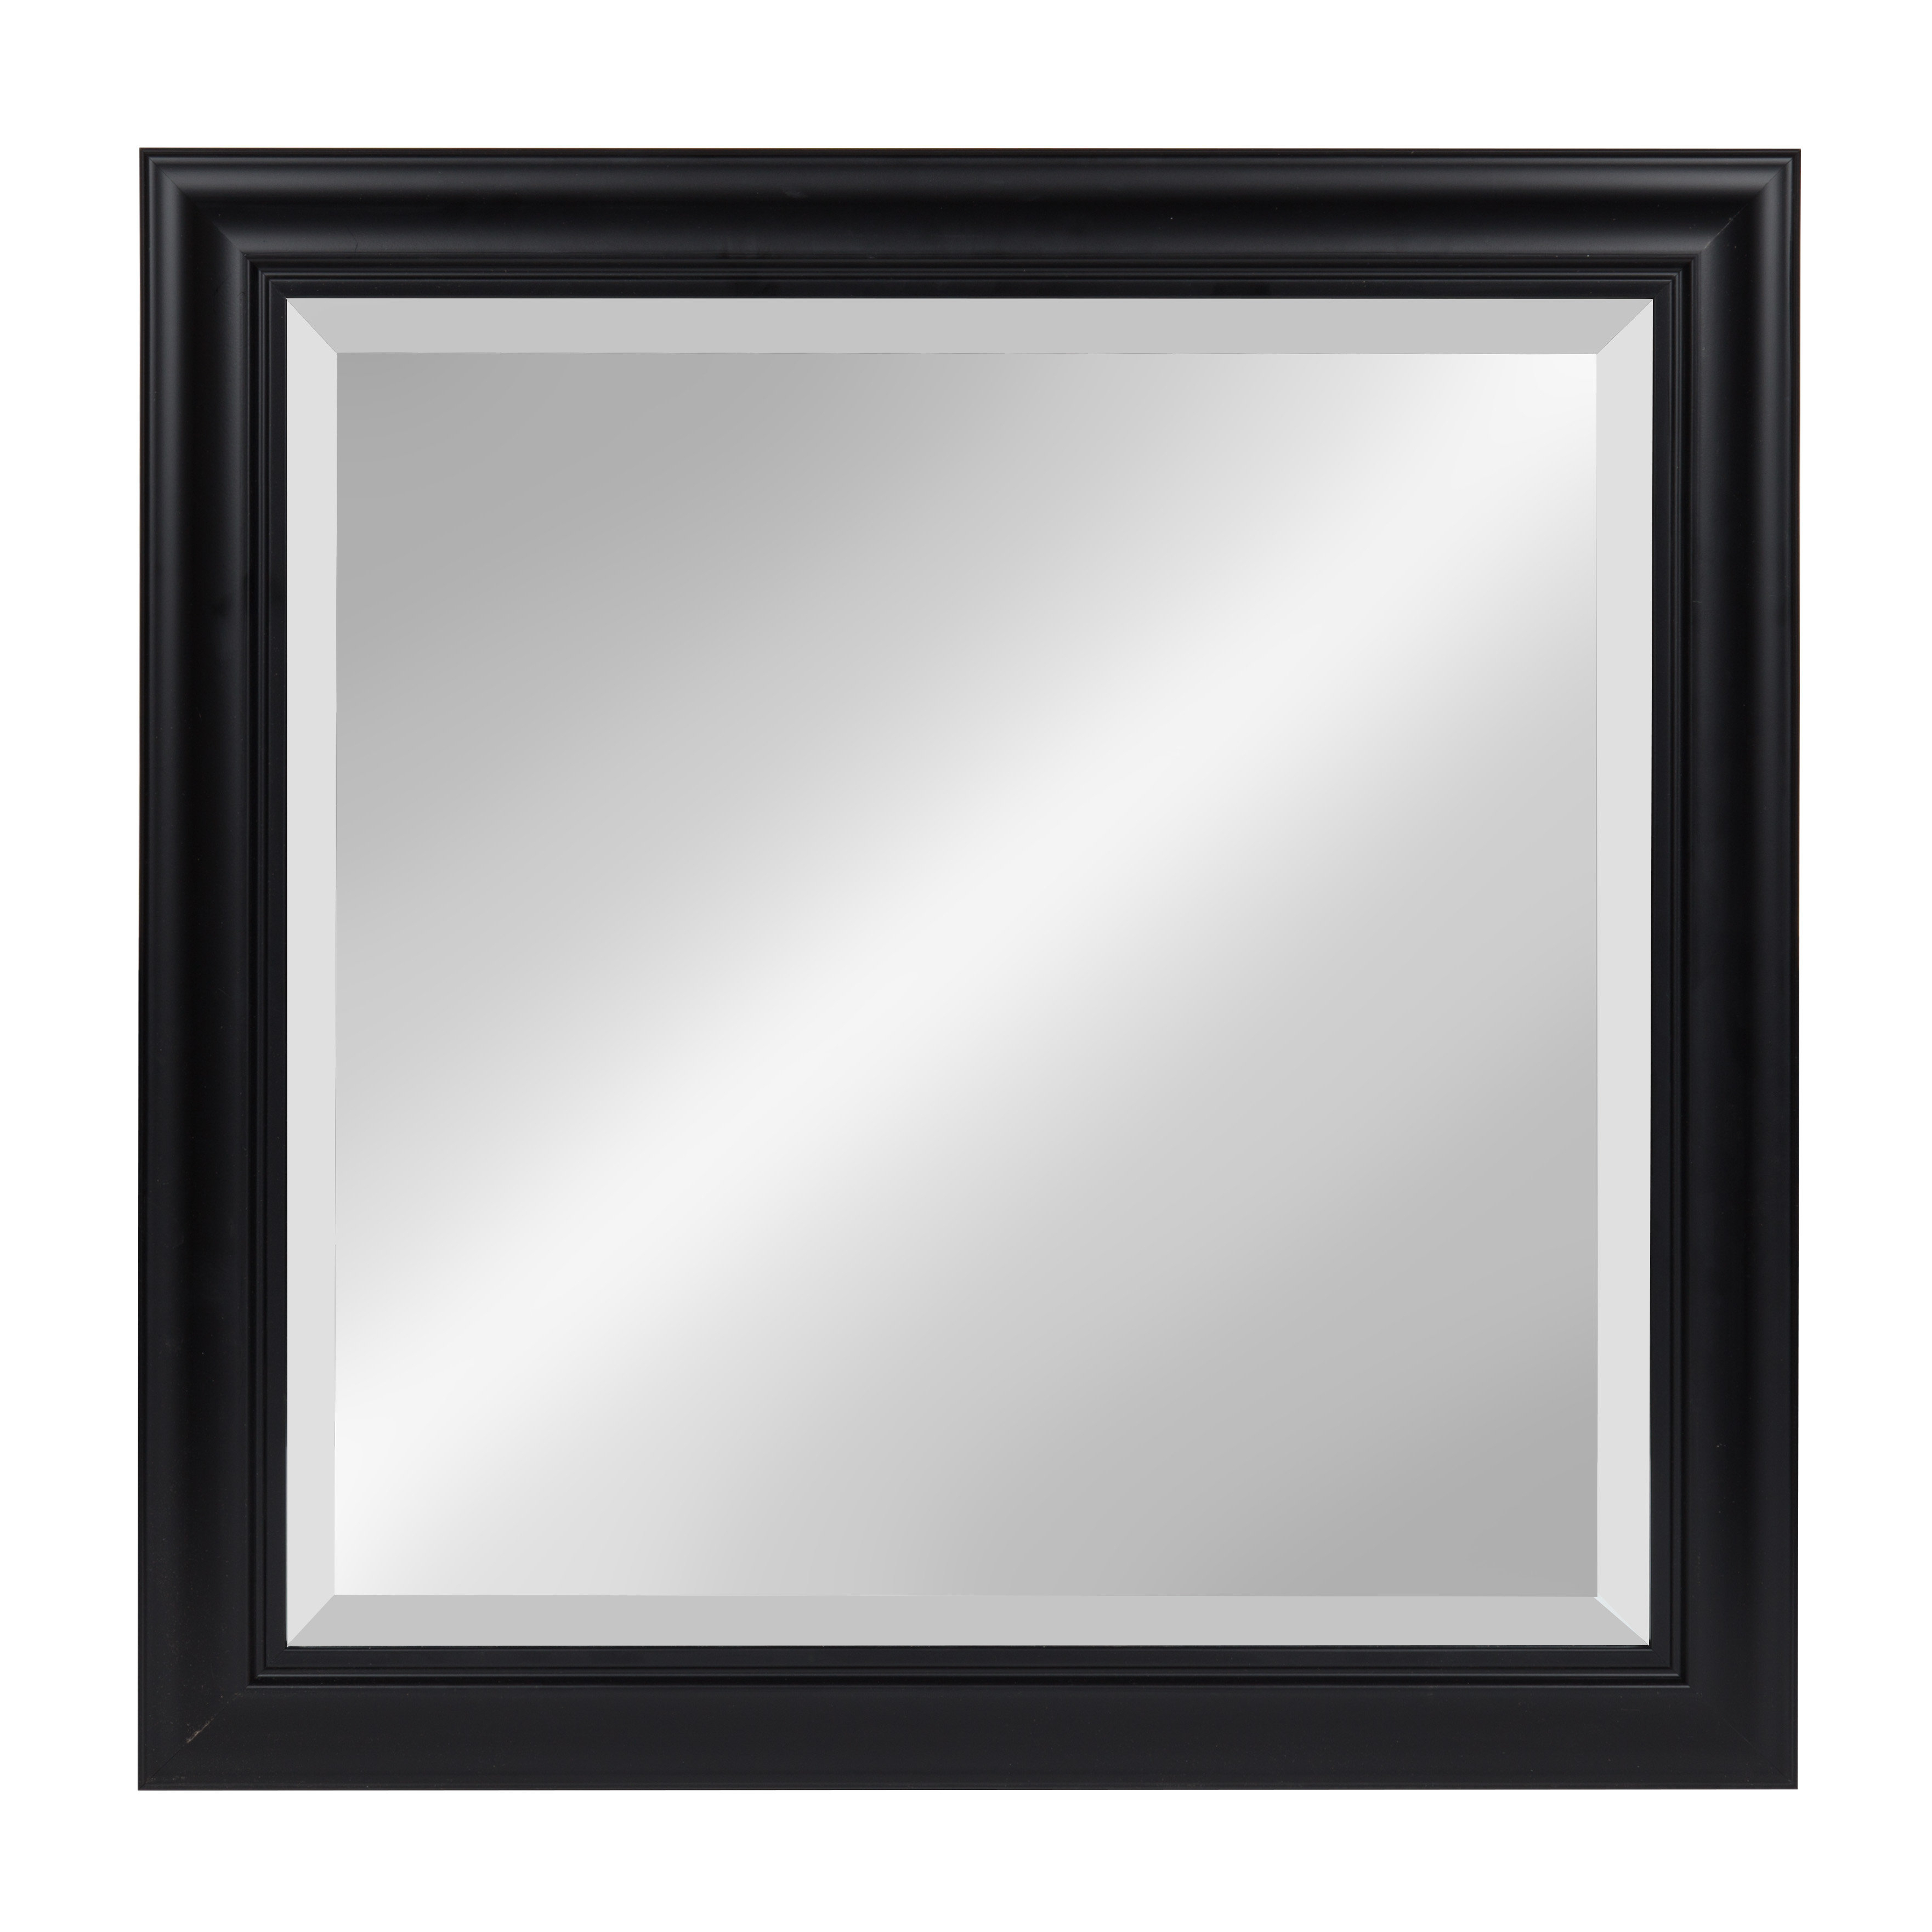 Hegarty Square Framed Accent Mirror Regarding Dedrick Decorative Framed Modern And Contemporary Wall Mirrors (Image 10 of 20)